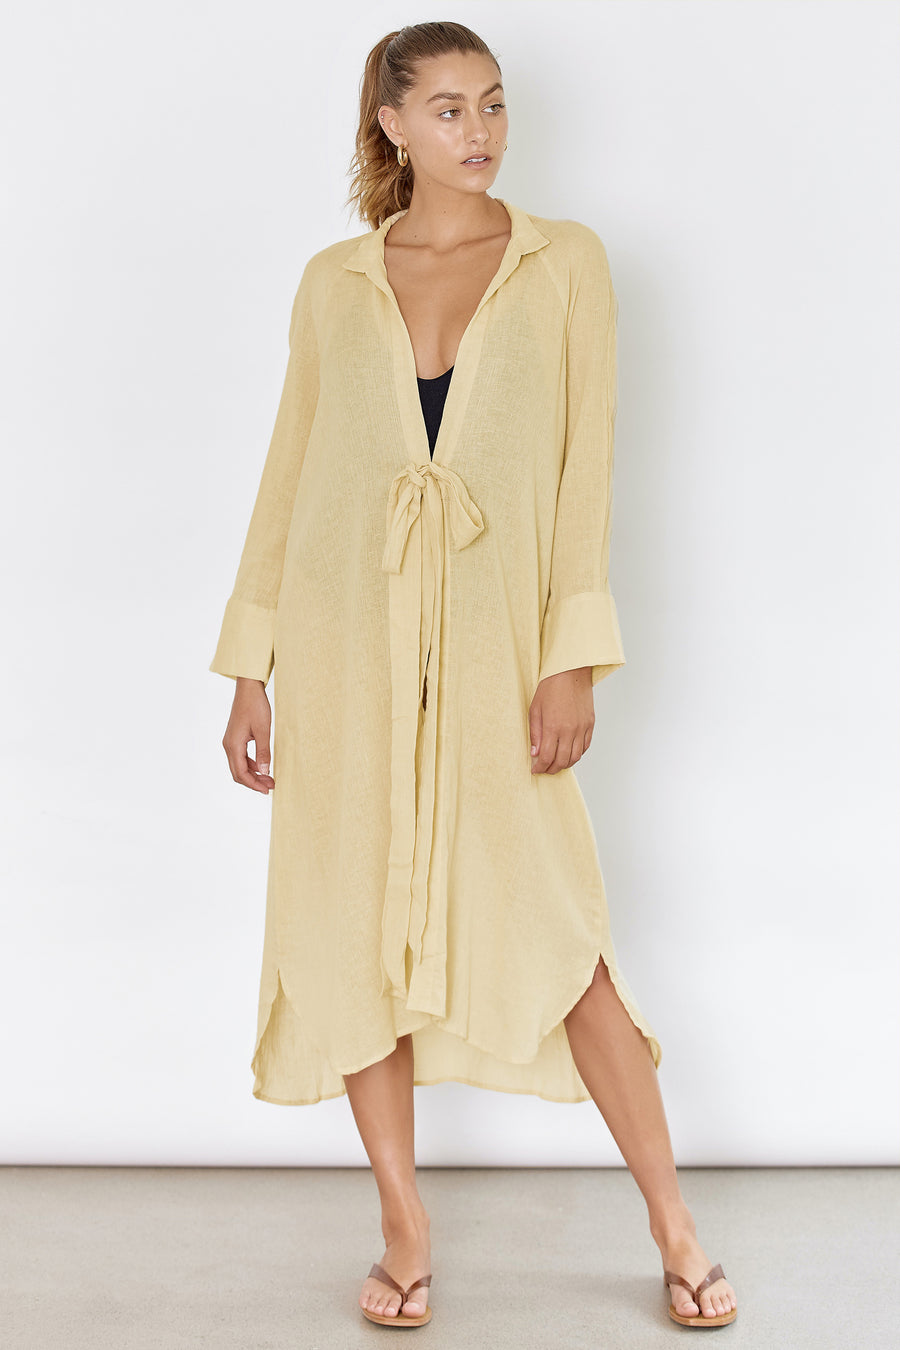 RAE SHIRT DRESS - YELLOW BONE